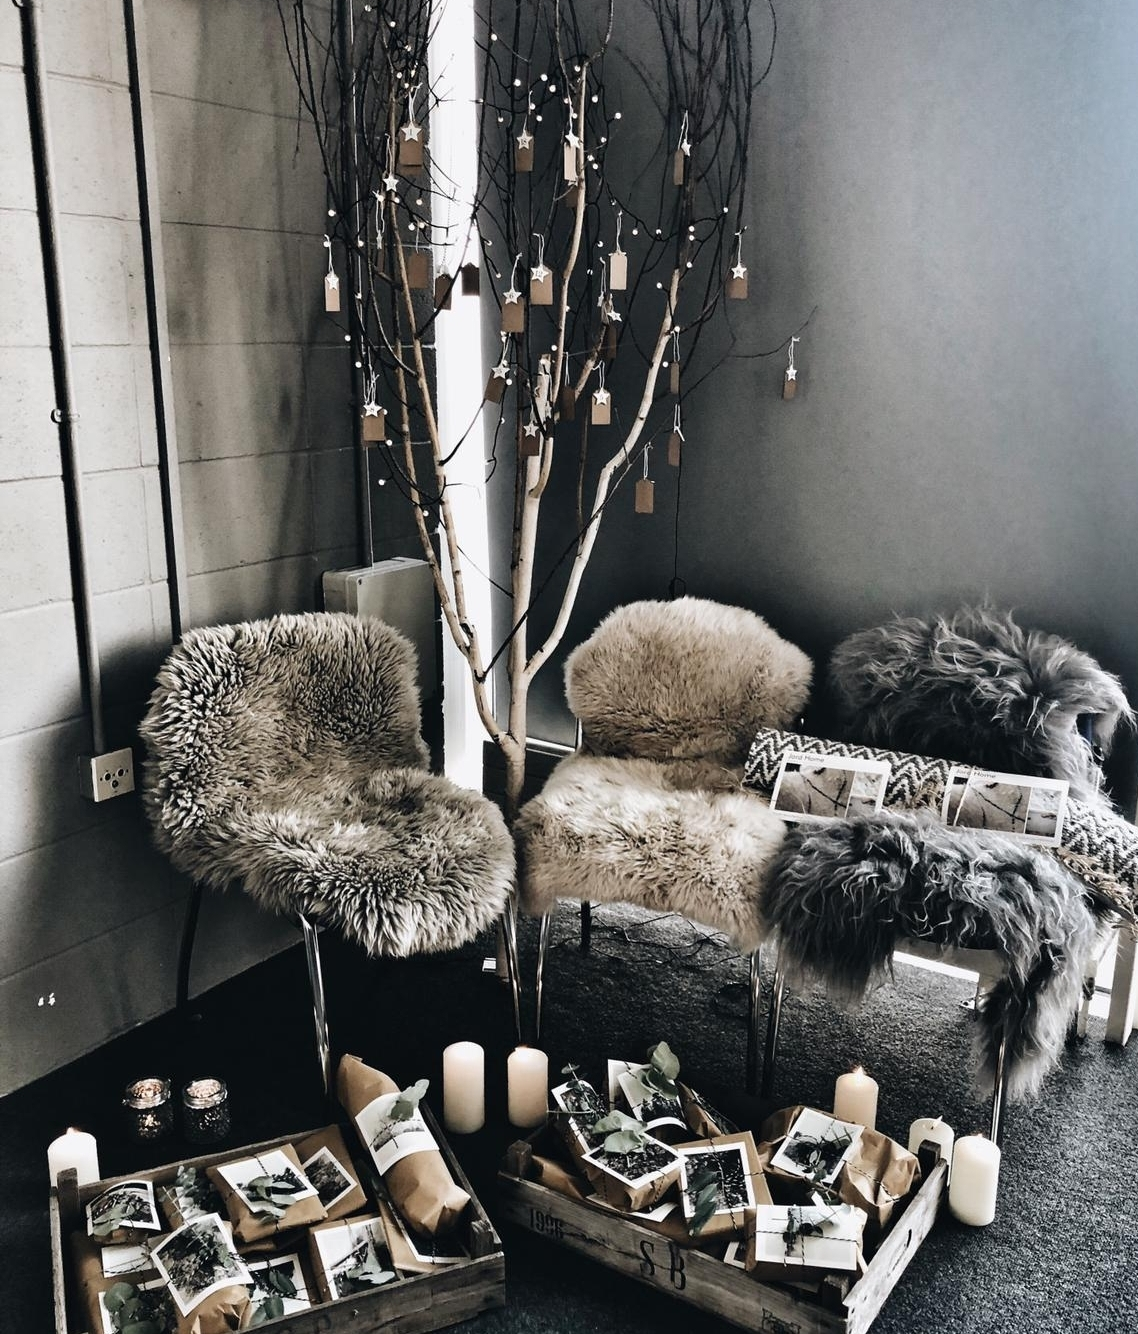 Our gifting advent tree allowed Scandi Santa to share some suprises with our guests from Jord Home , Join London , Sevin London , Malako Skincare , Igigi General Store , Love Struck Interiors , Thornback & Peel , Kate and the Ink , The Little Botanical and Chalk Pink Linen